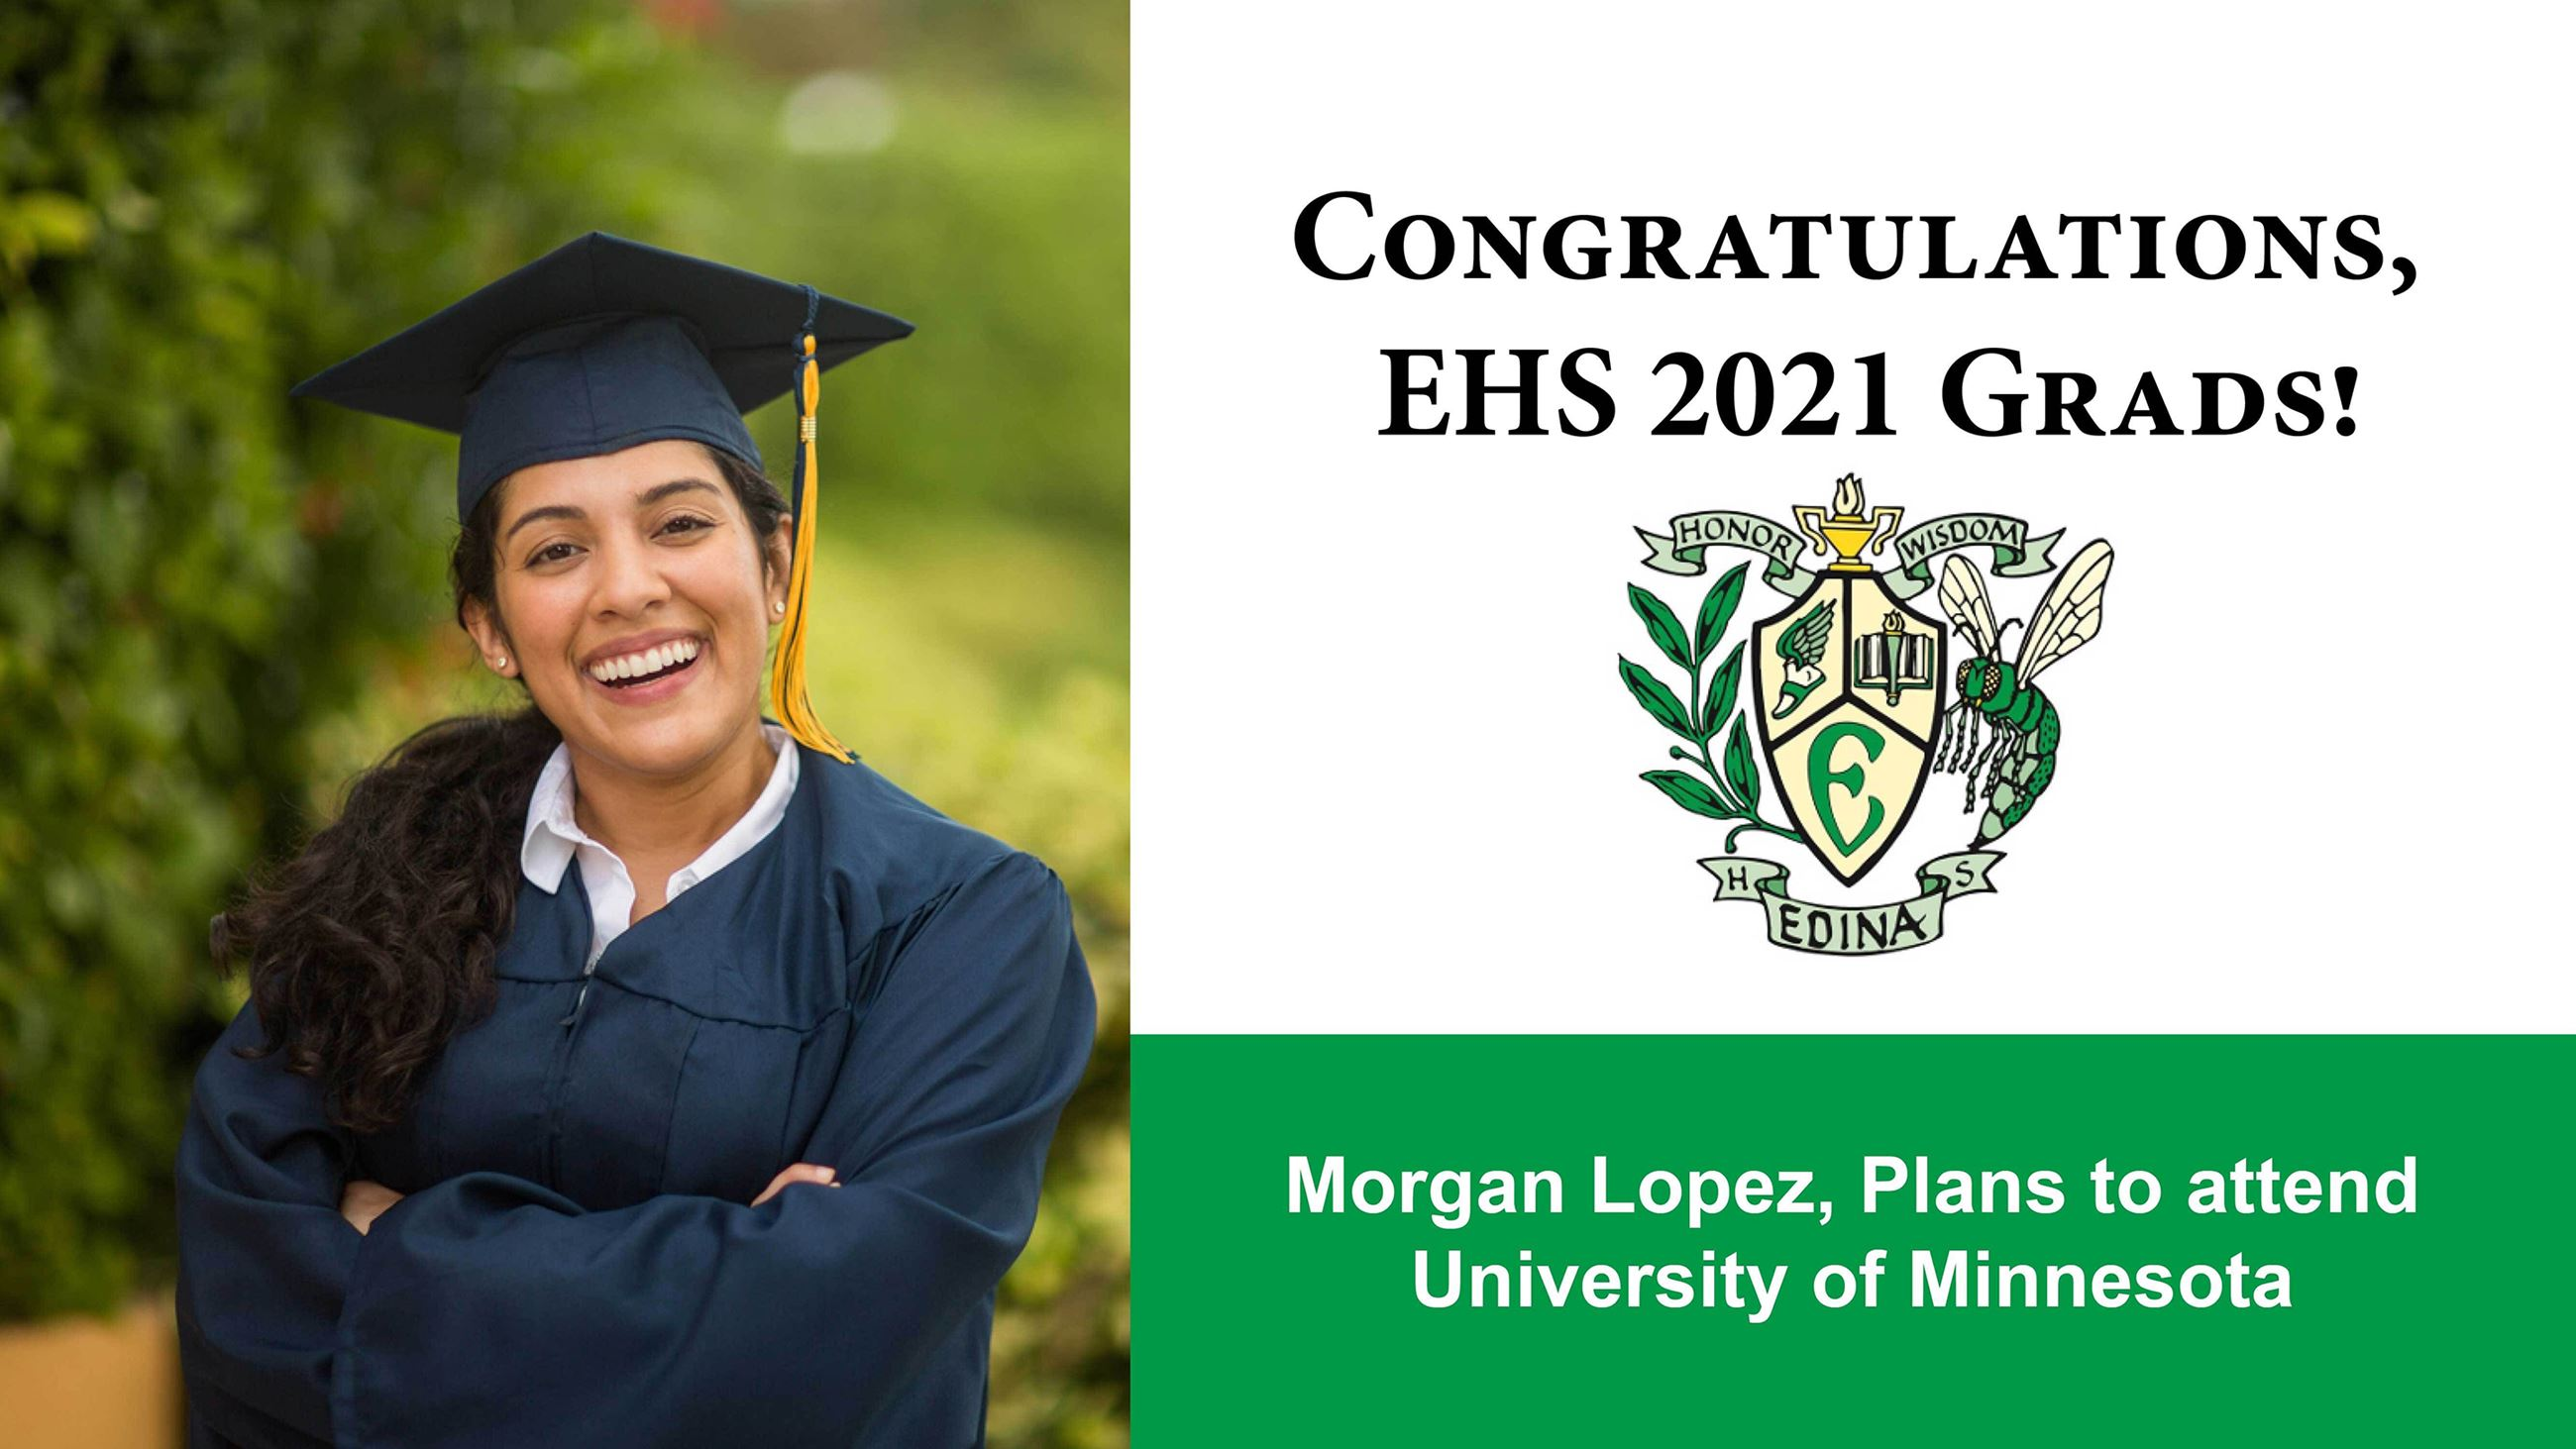 Example photo and congratulatory message to Class of 2020 graduate